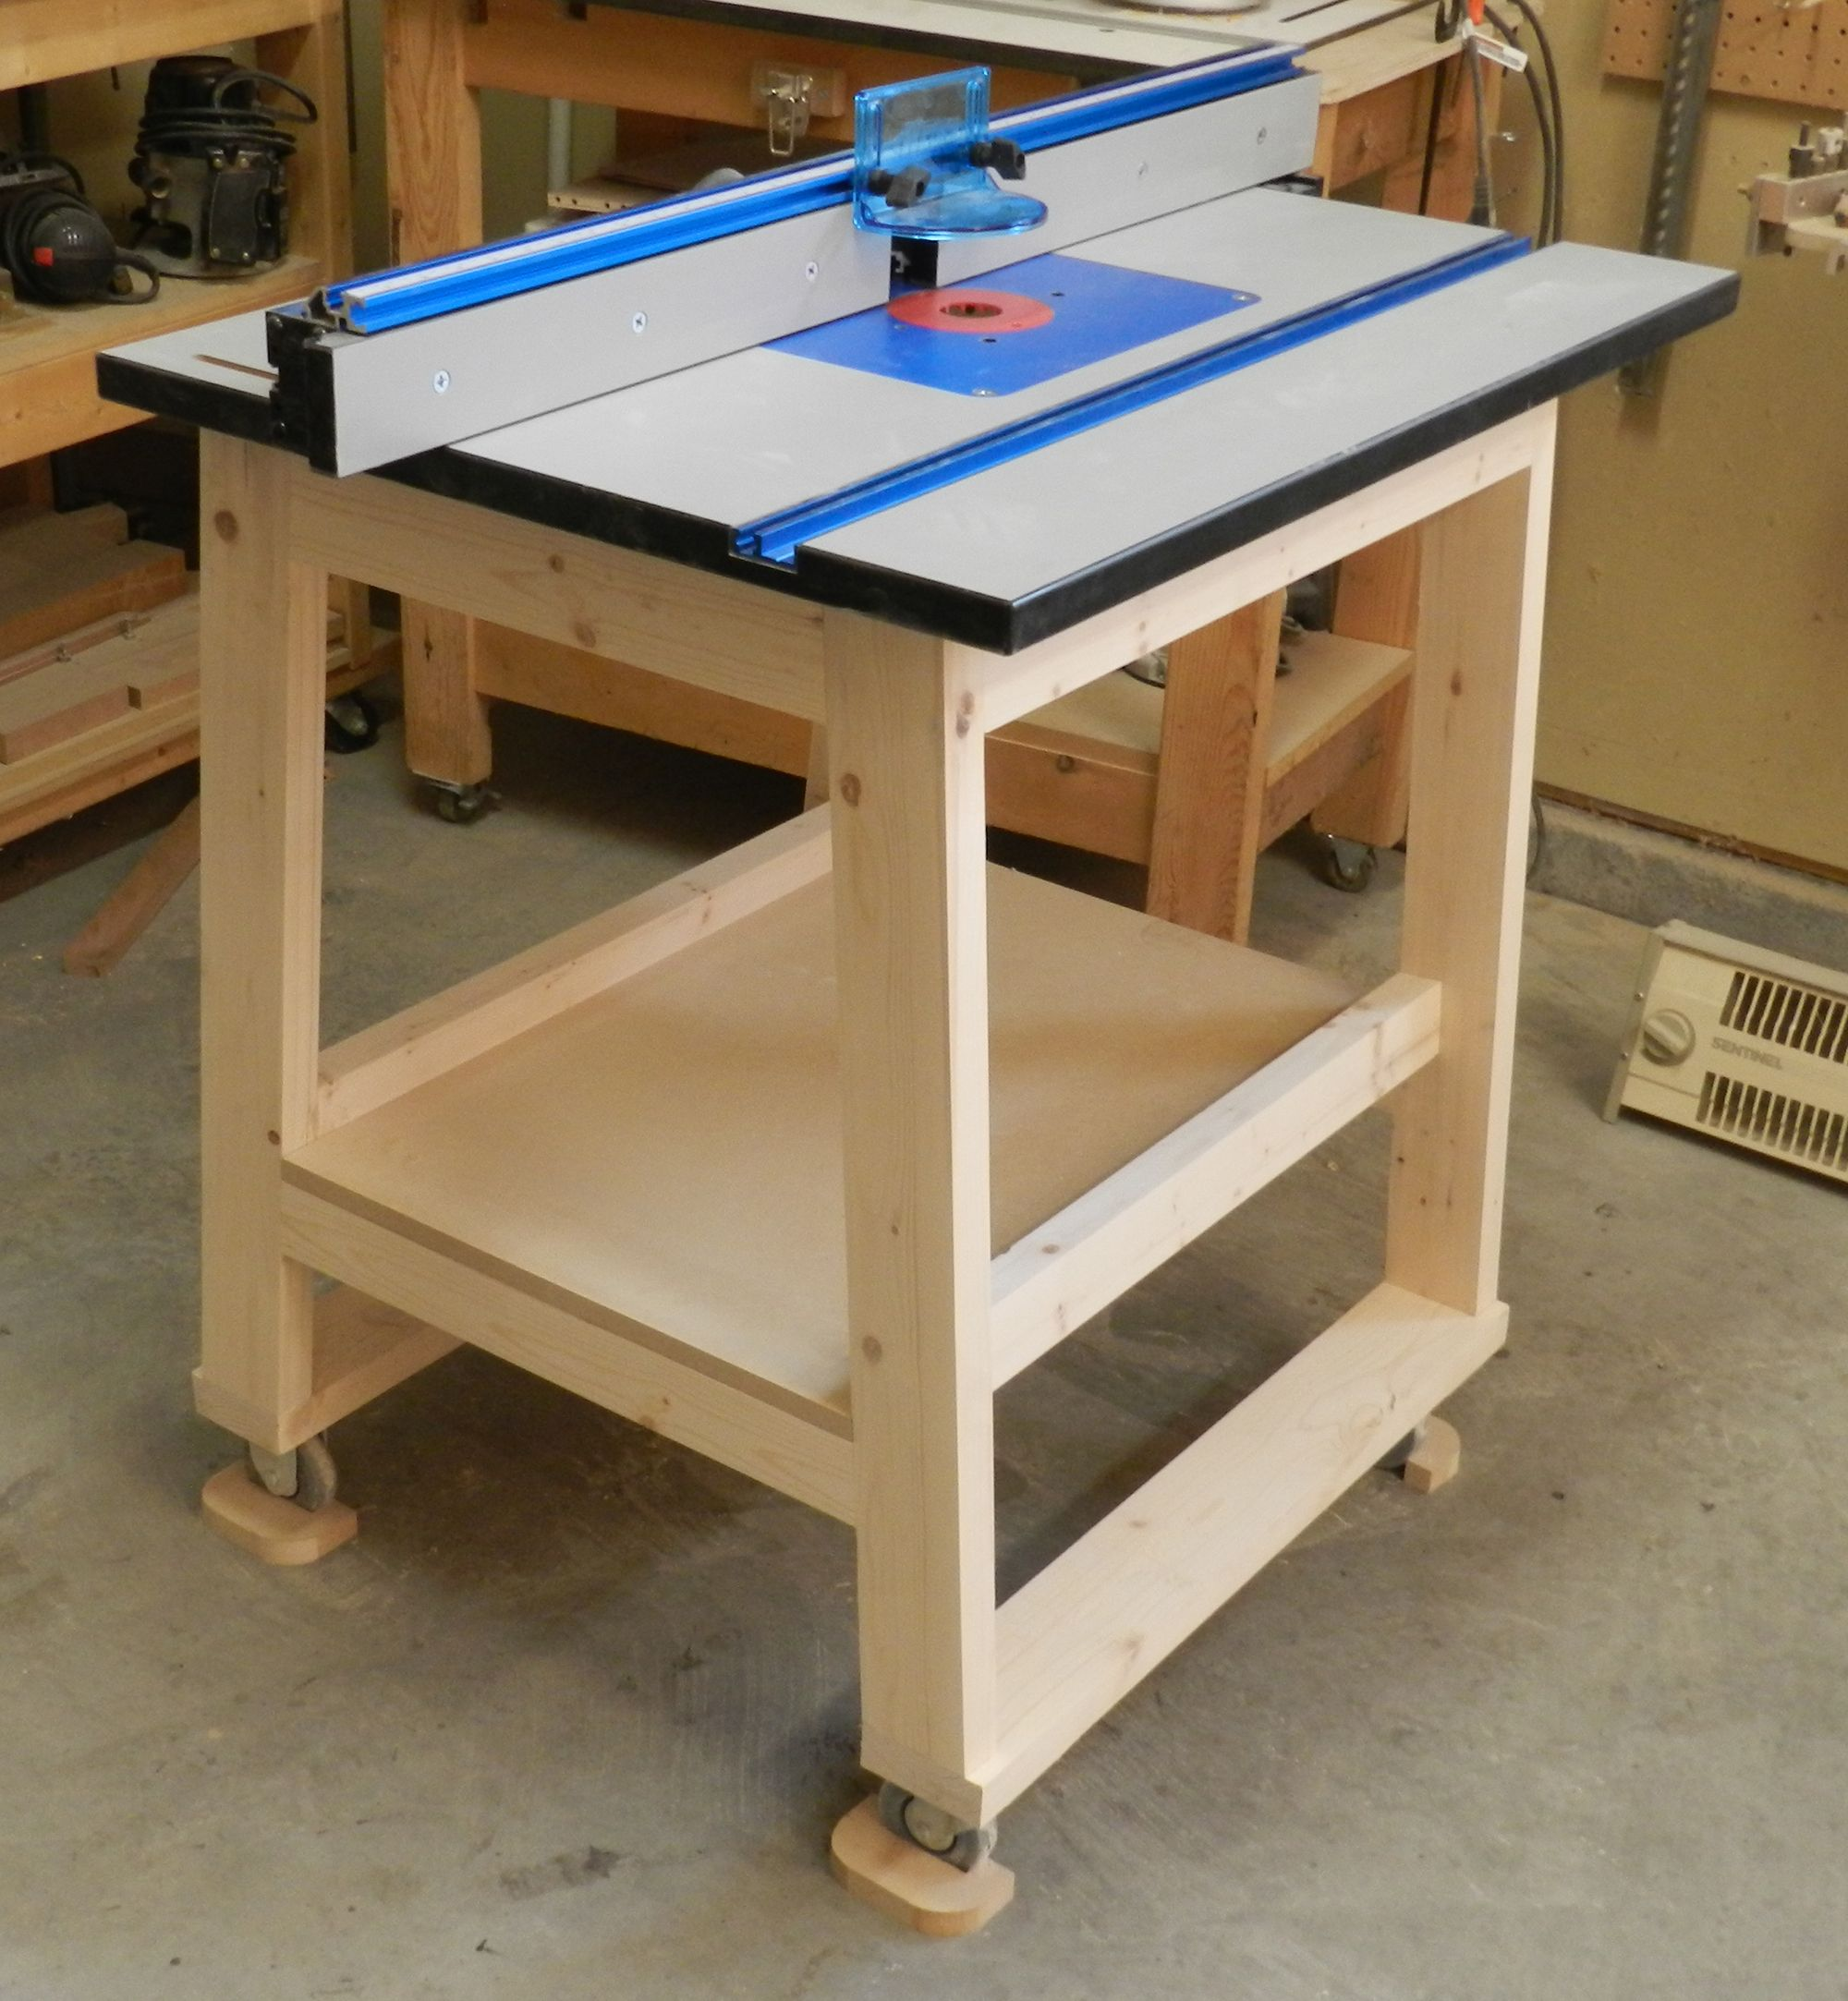 Wooden kreg router table plans diy blueprints kreg router table wooden kreg router table plans diy blueprints kreg router table plans 2 in 1 outdoor games greentooth Images